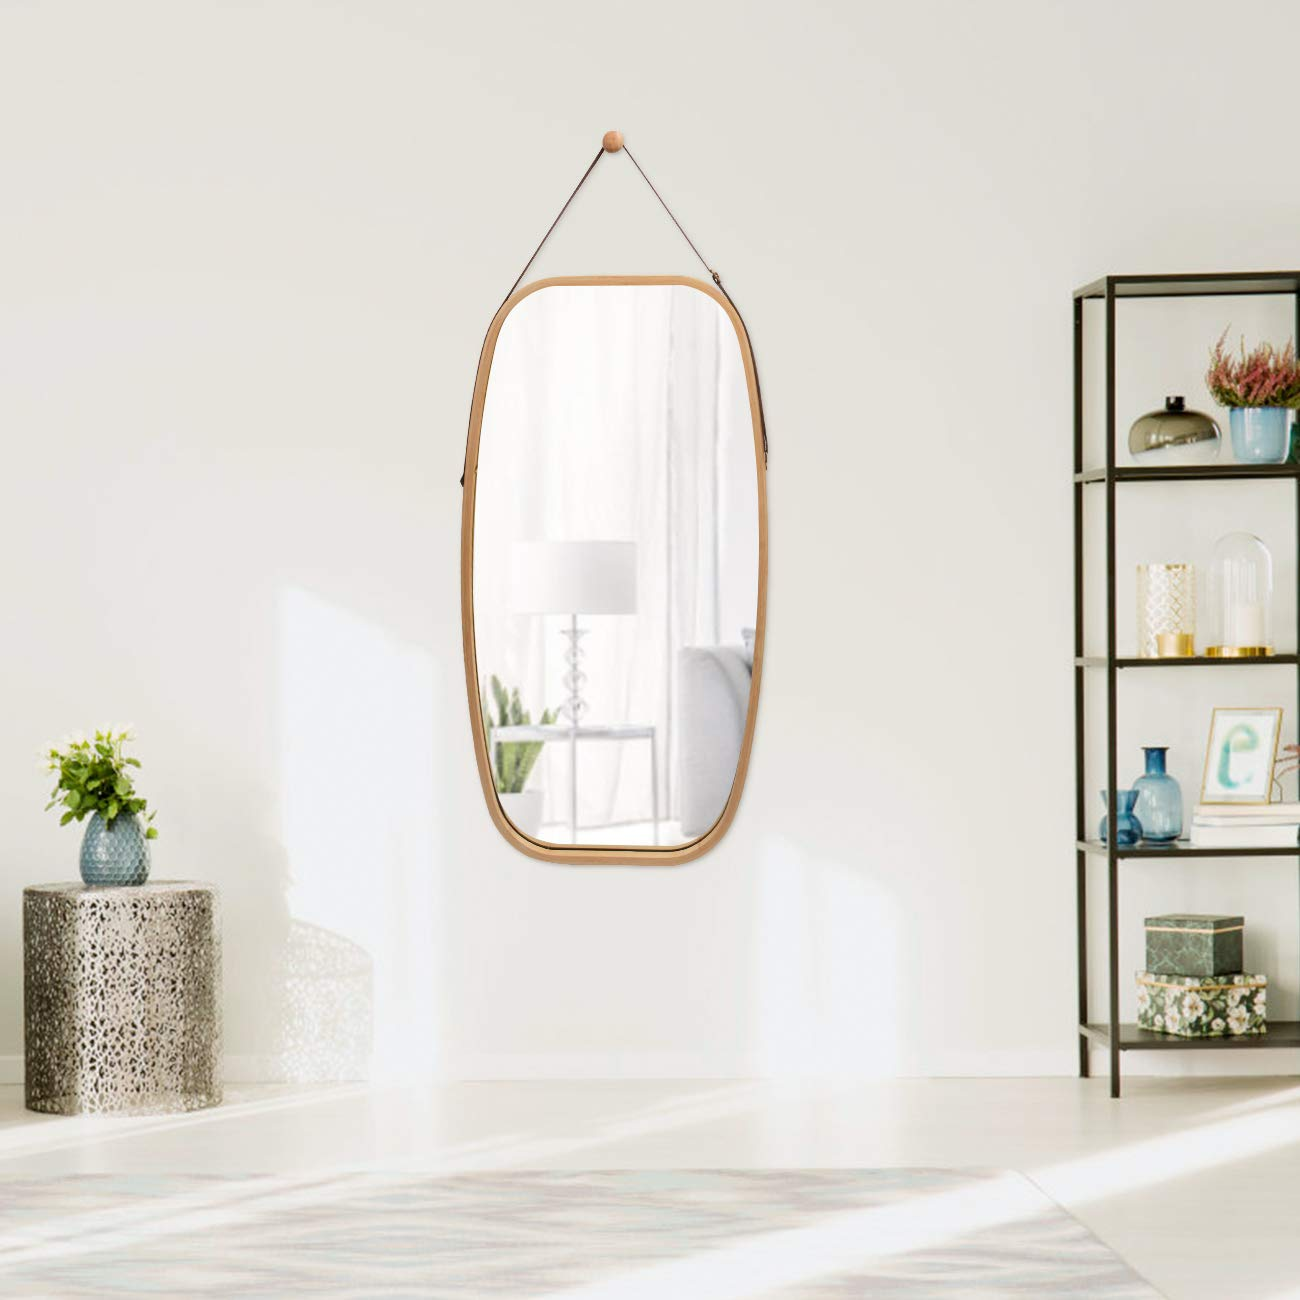 Full Length Wall Mirror Hanging in Bathroom Bedroom – Solid Bamboo Frame Adjustable Leather Strap, Makeup Dressing Home Decor Bamboo, 29L 17W Inch